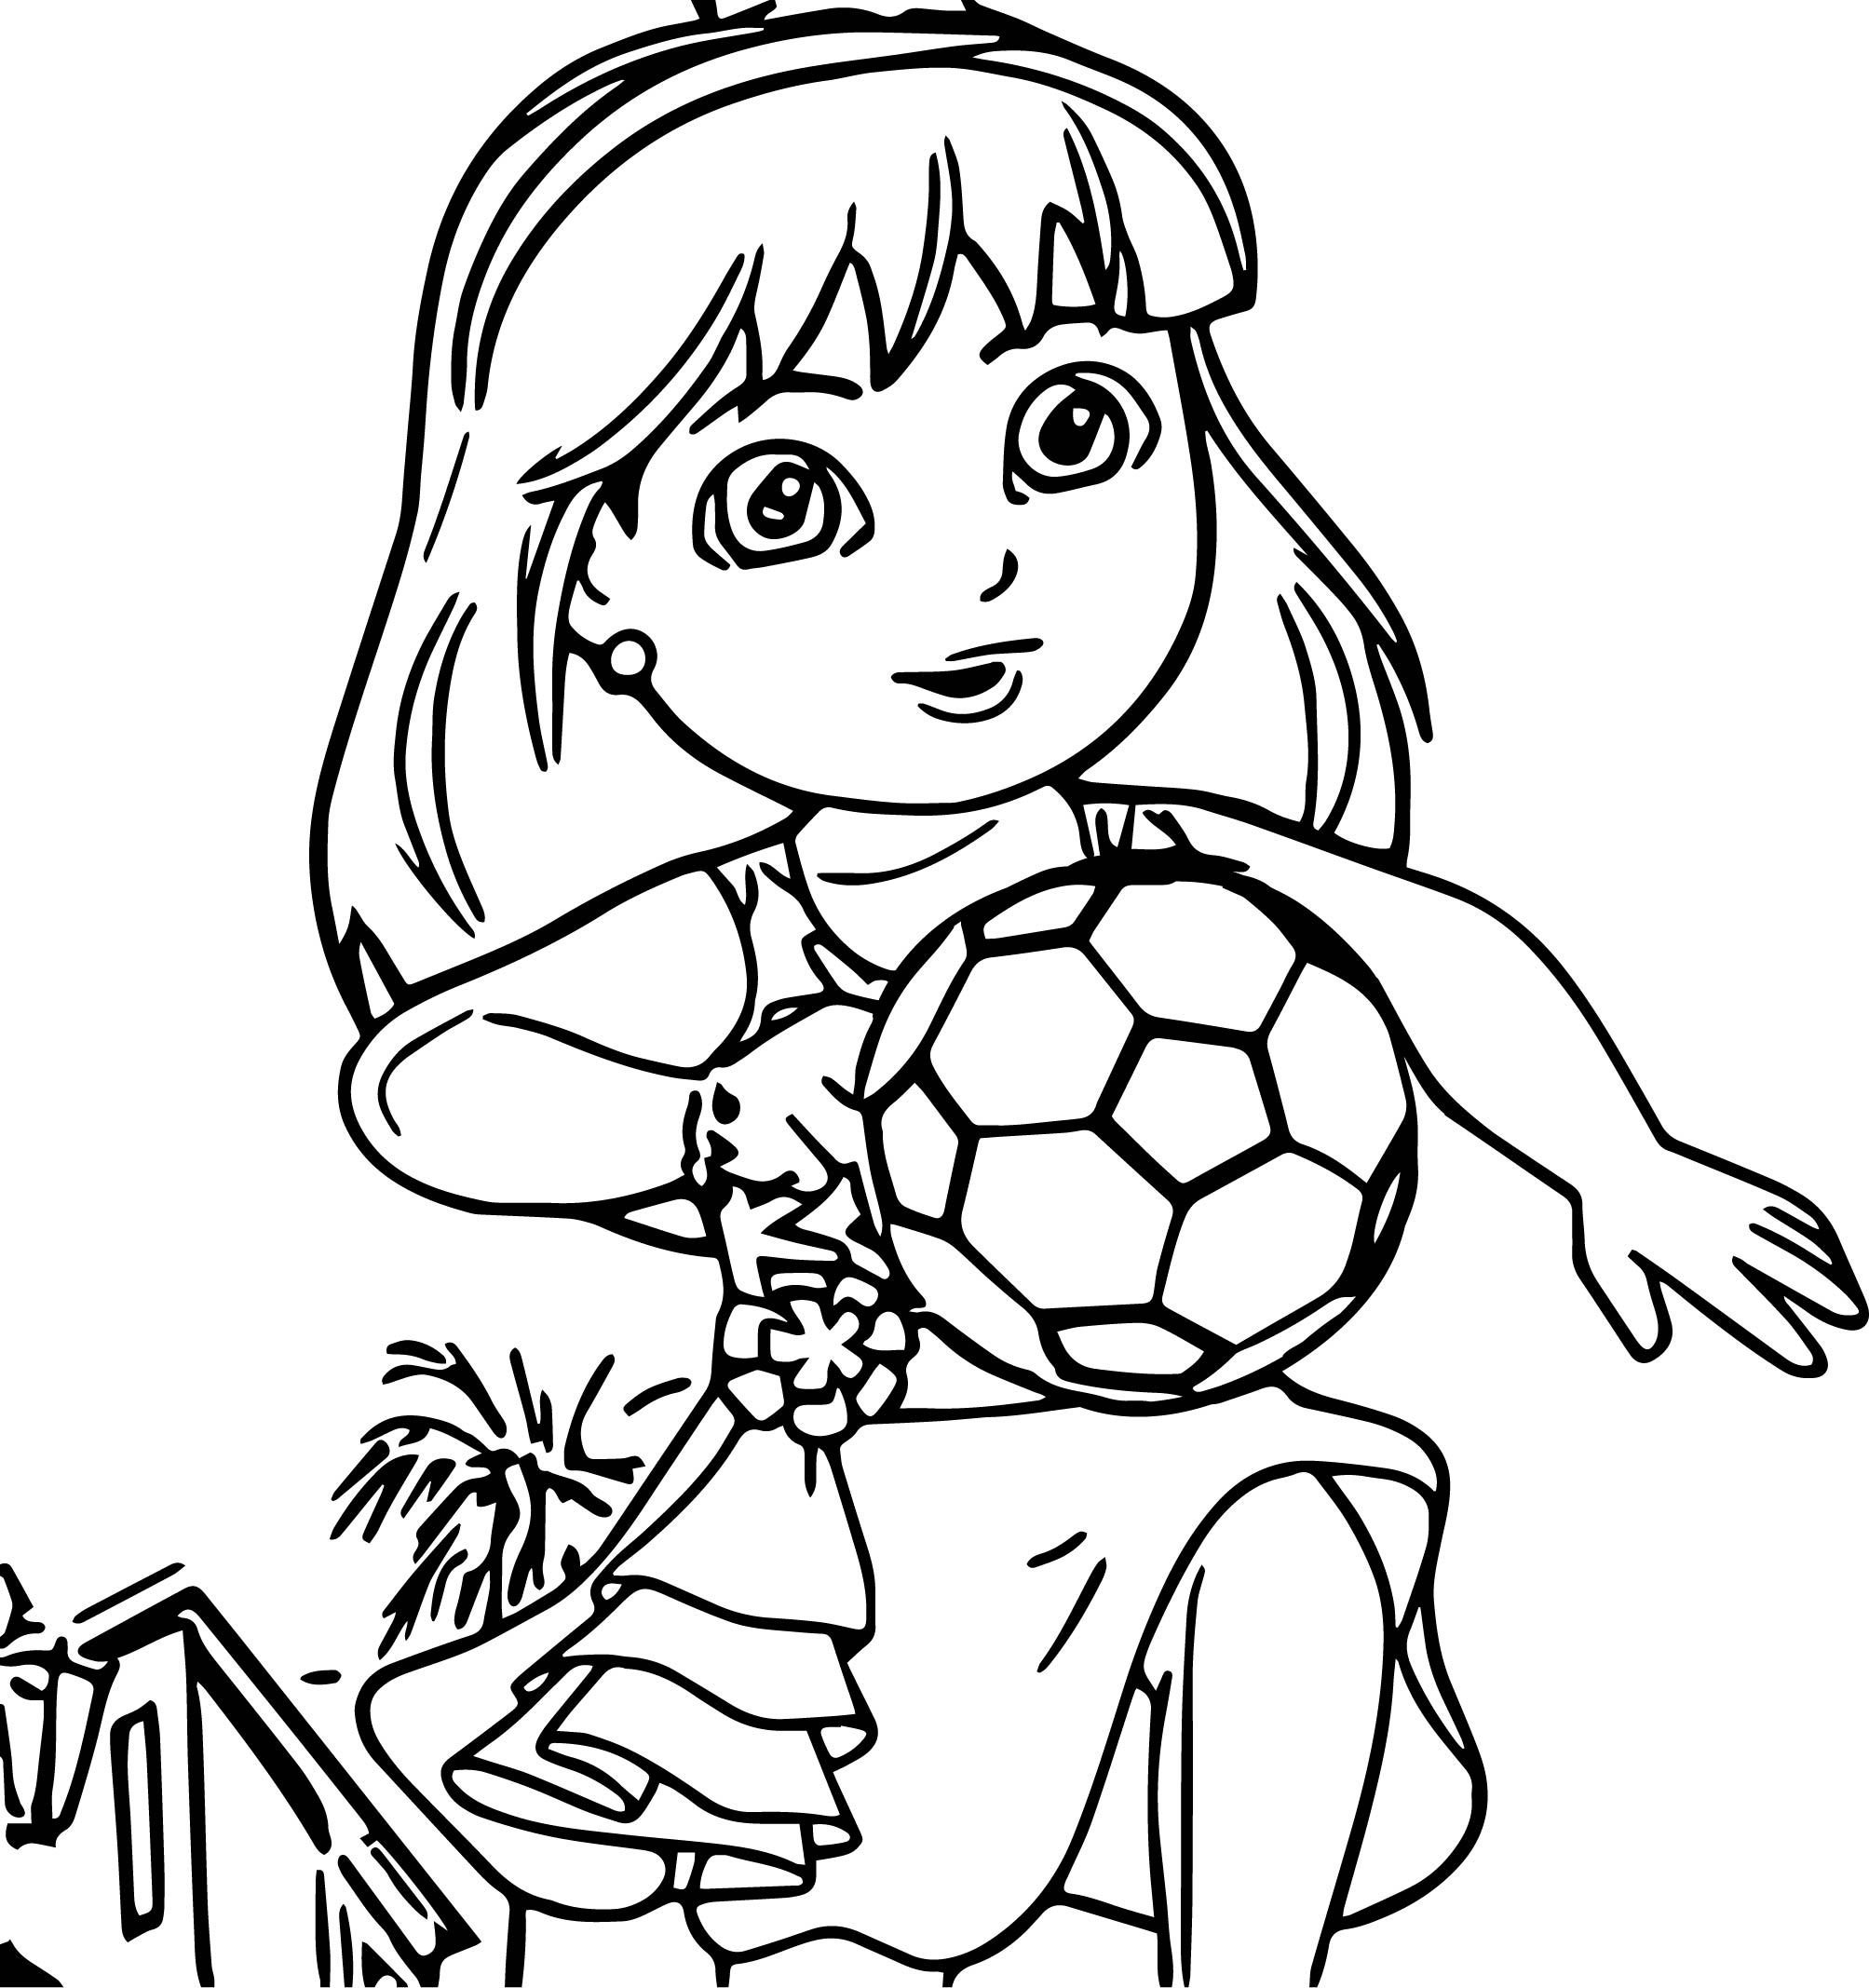 dragons soccer coloring pages - photo#37